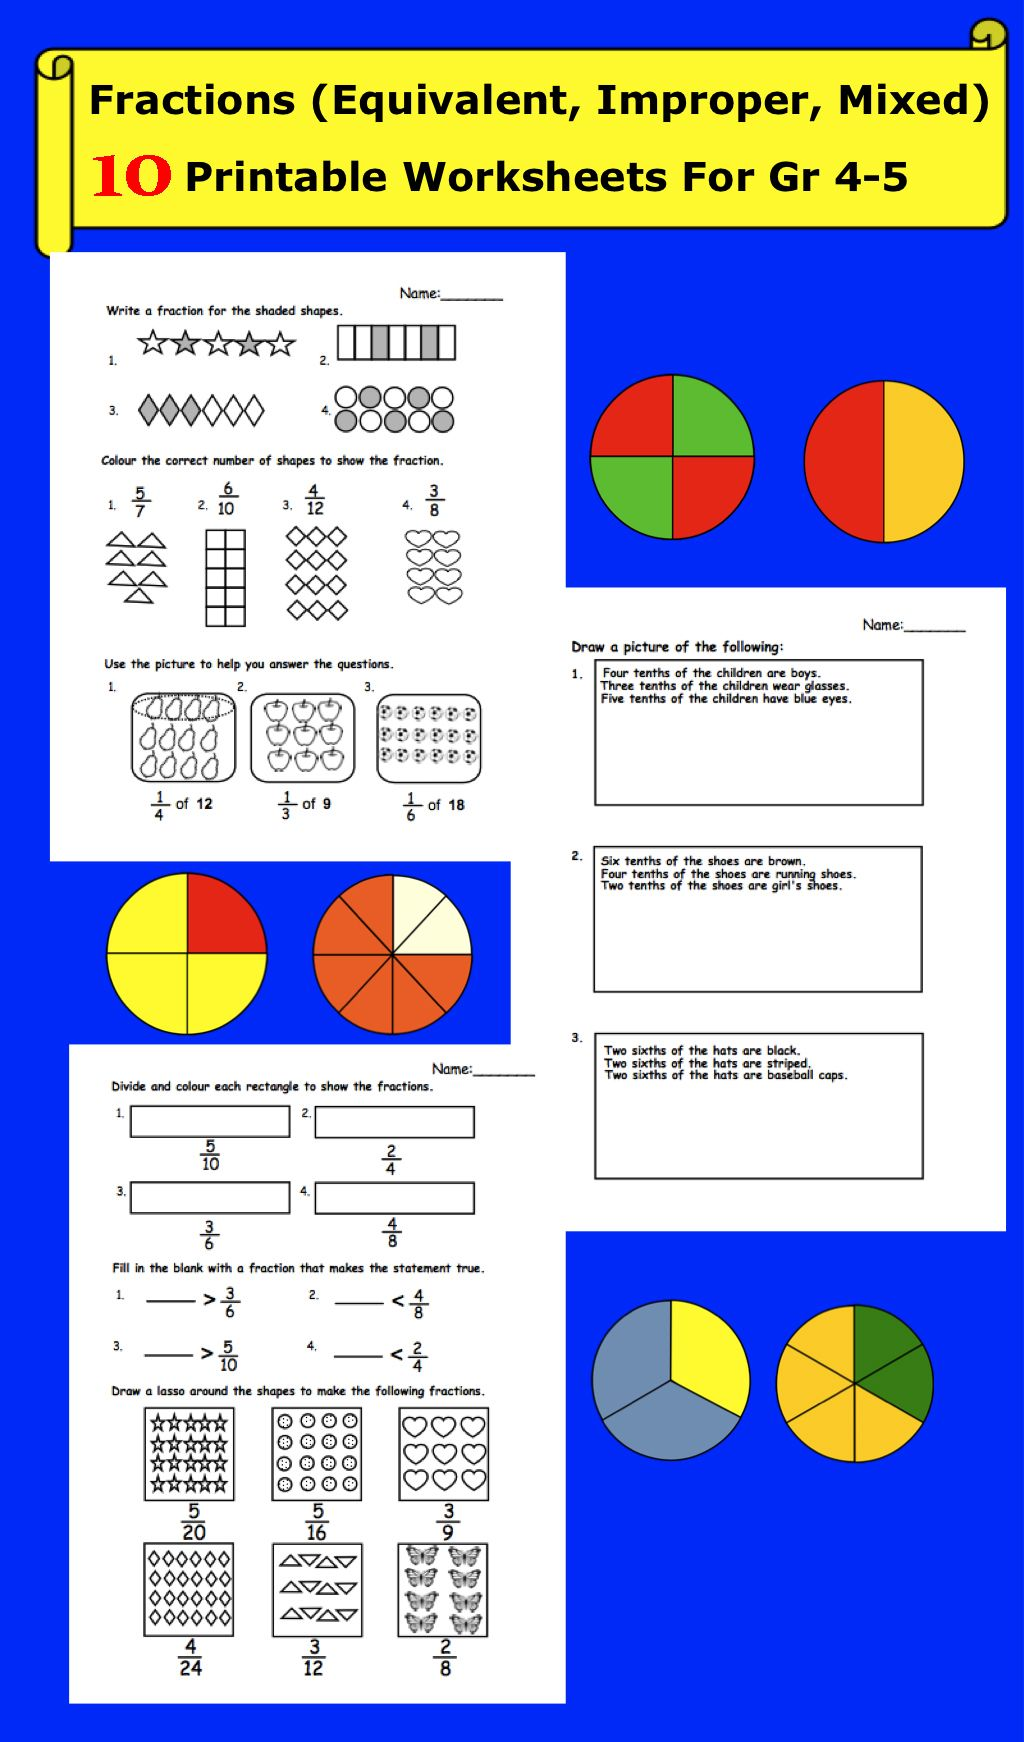 Fractions (Equivalent, Improper, Mixed) Printable